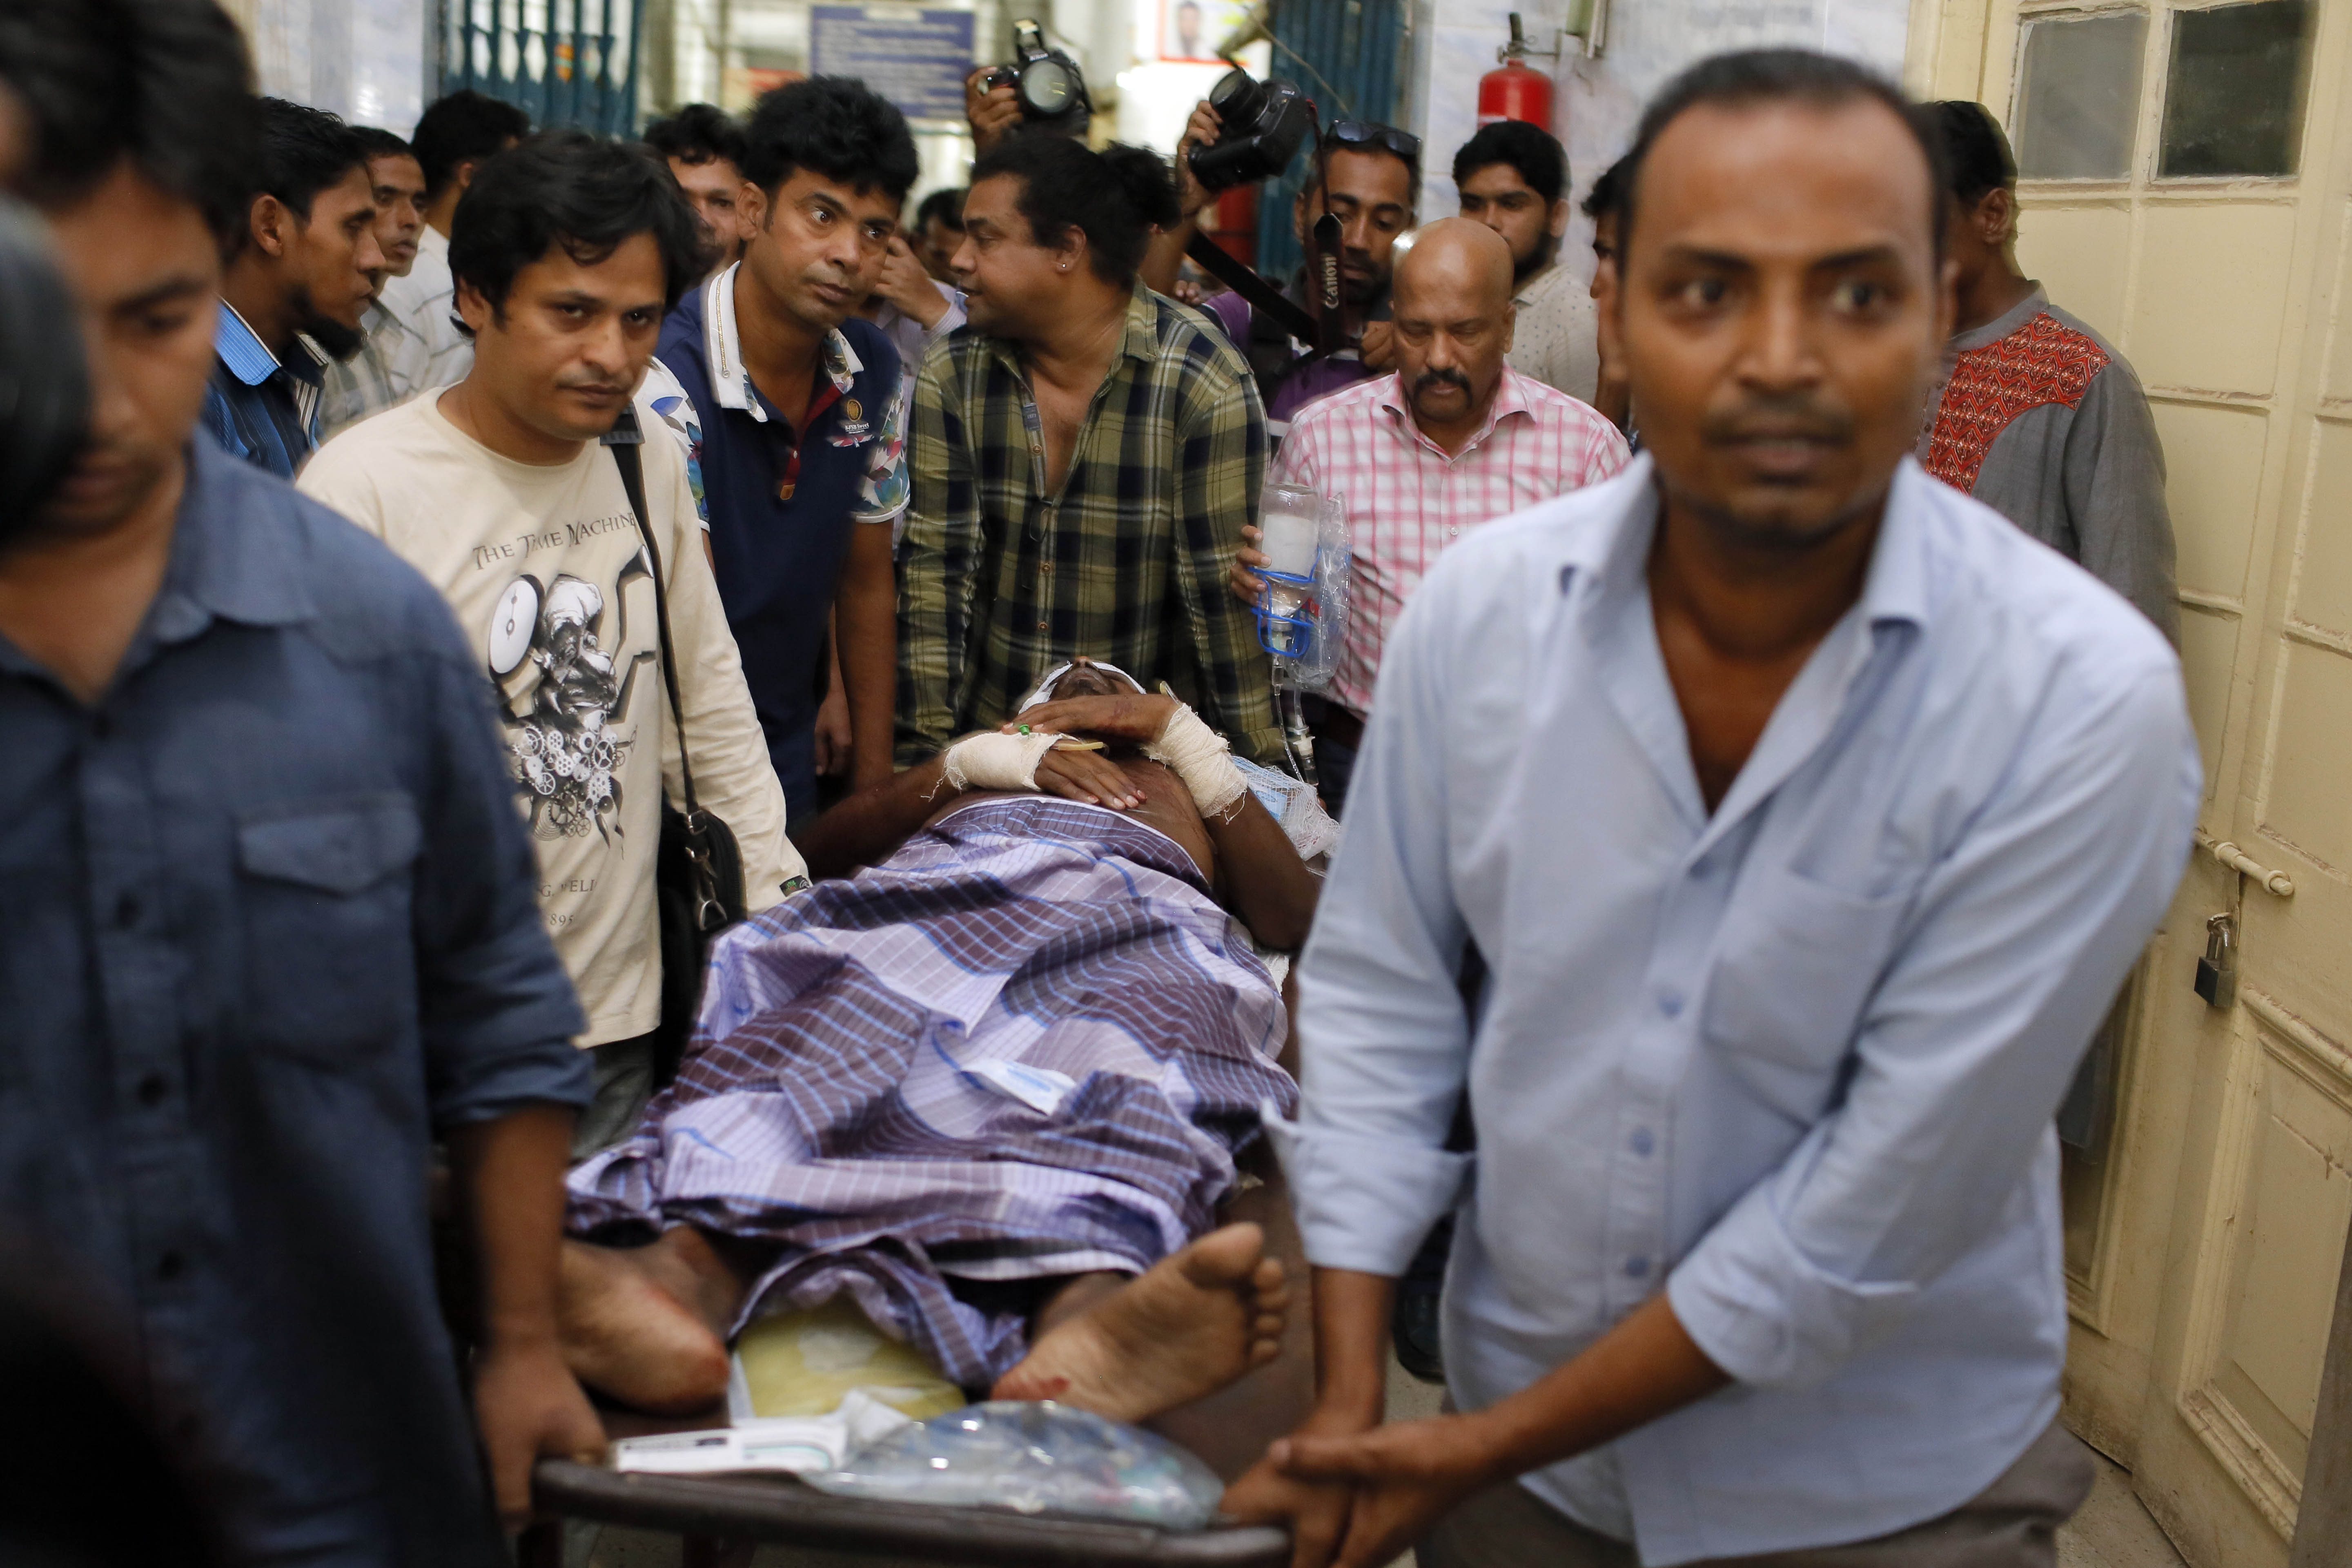 Іnjured publisher Ahmed Rahim Tutul is carried on a stretcher to the Dhaka Medical College Hospital in Dhaka, Bangladesh, Oct. 31, 2015.